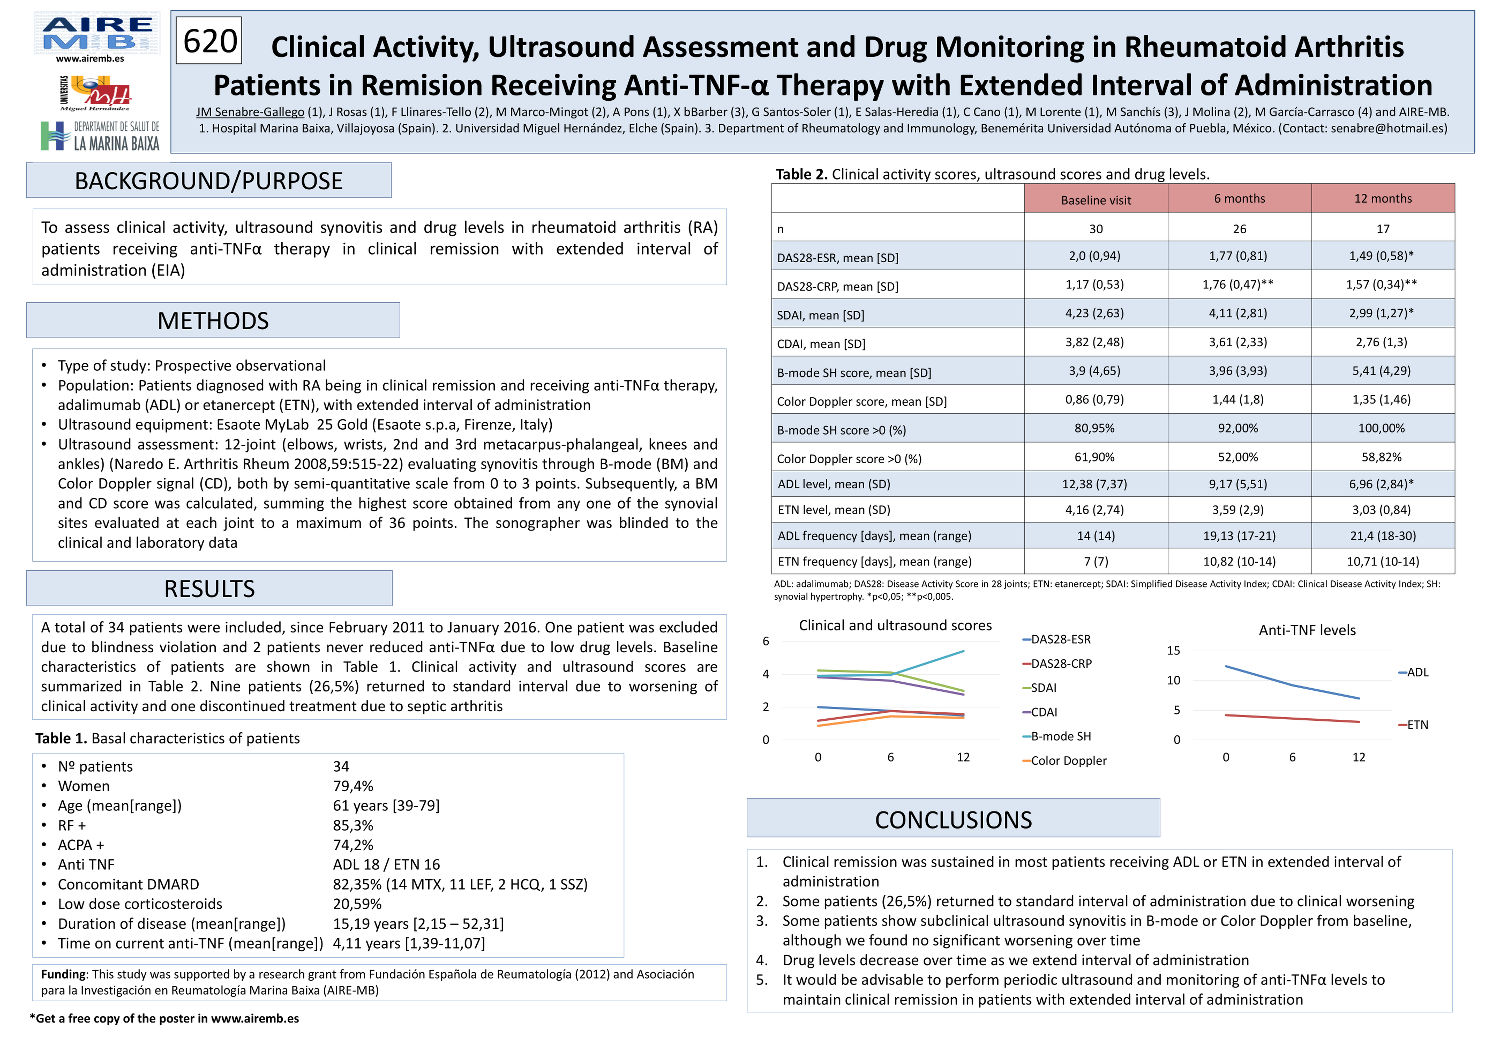 Clinical Activity Ultrasound Assessment And Drug Monitoring In Rheumatoid Arthritis Patients In